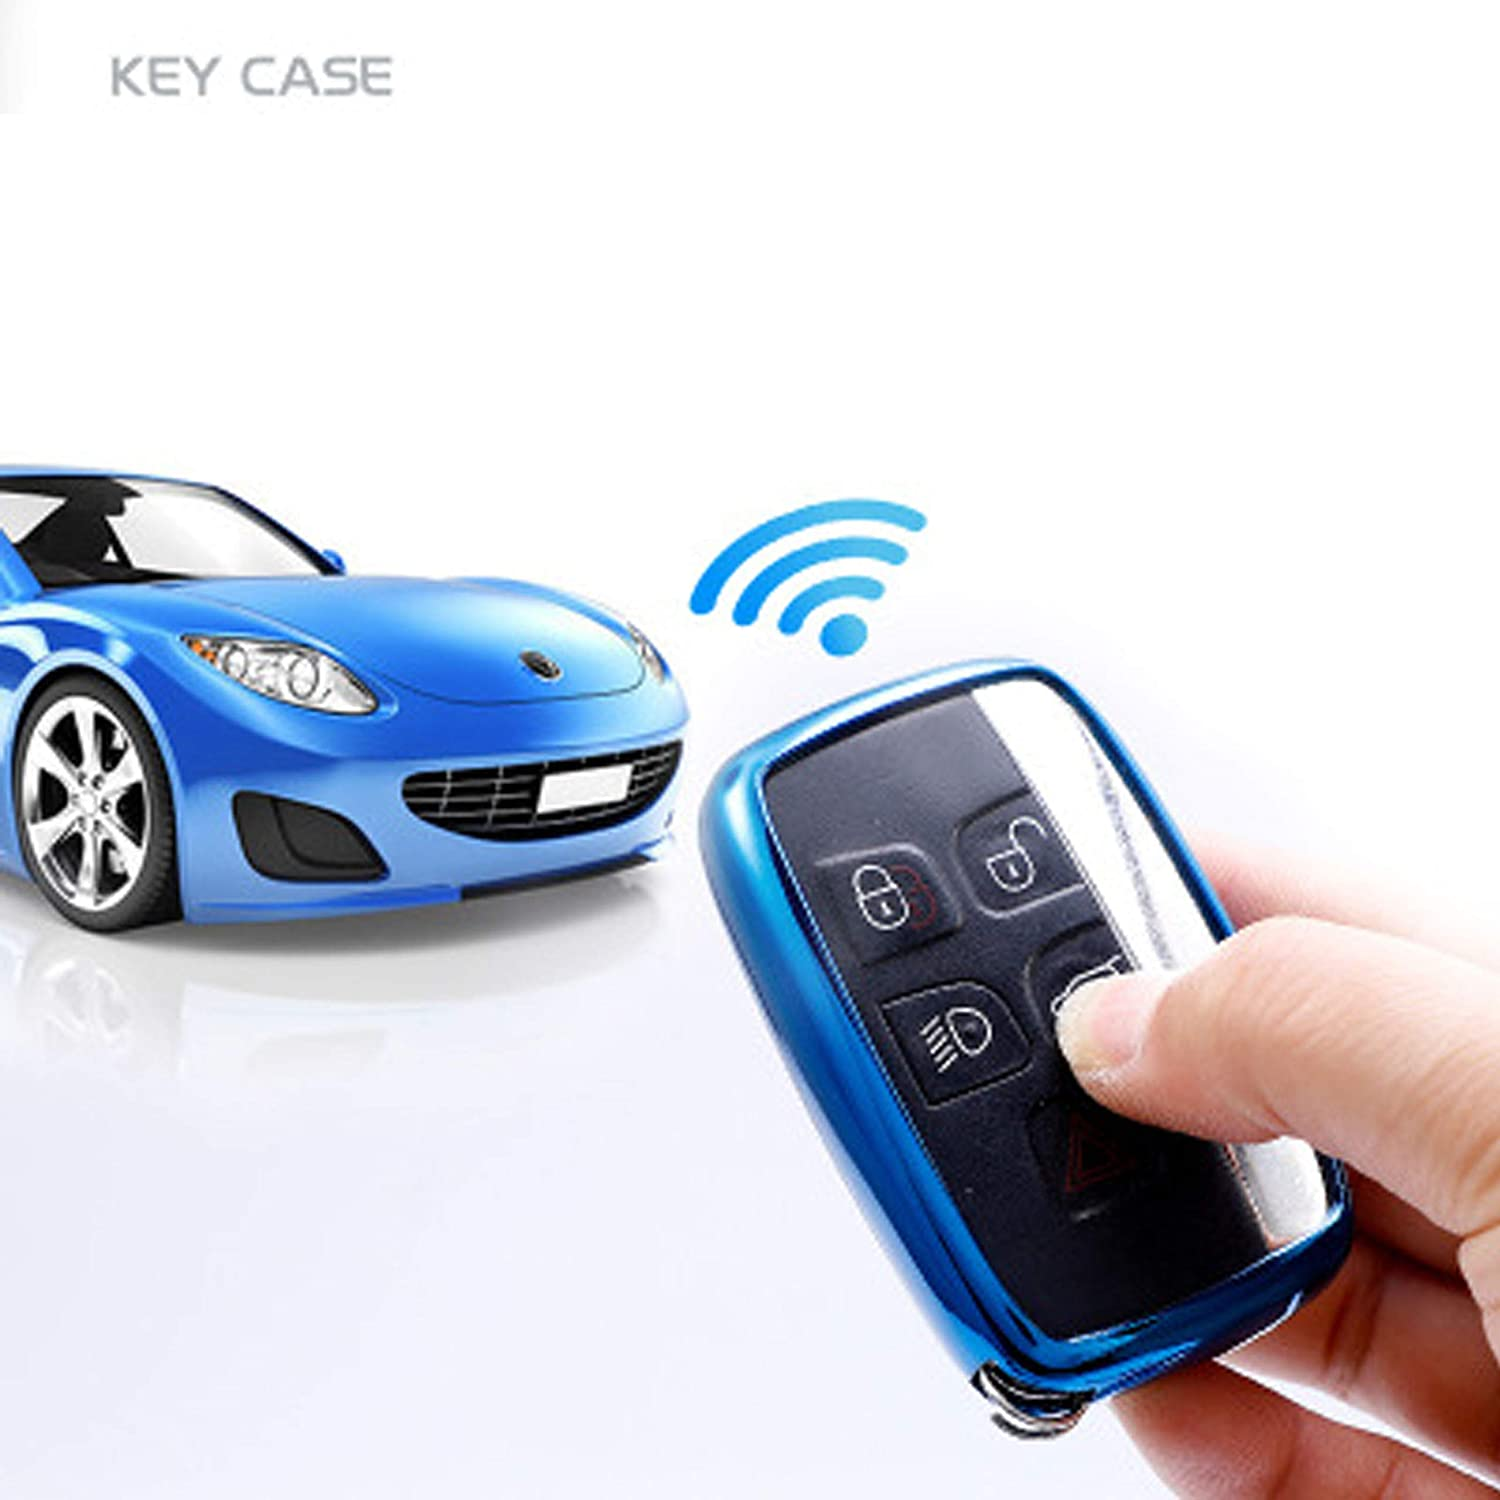 Red Soft TPU Smart Key Fob Case Holder Jacket Protector for Range Rover Evoque Velar Sport Discovery Freelander2 LR4 Land Rover Sport and Jaguar XF XJ XE F-PACE F-Type